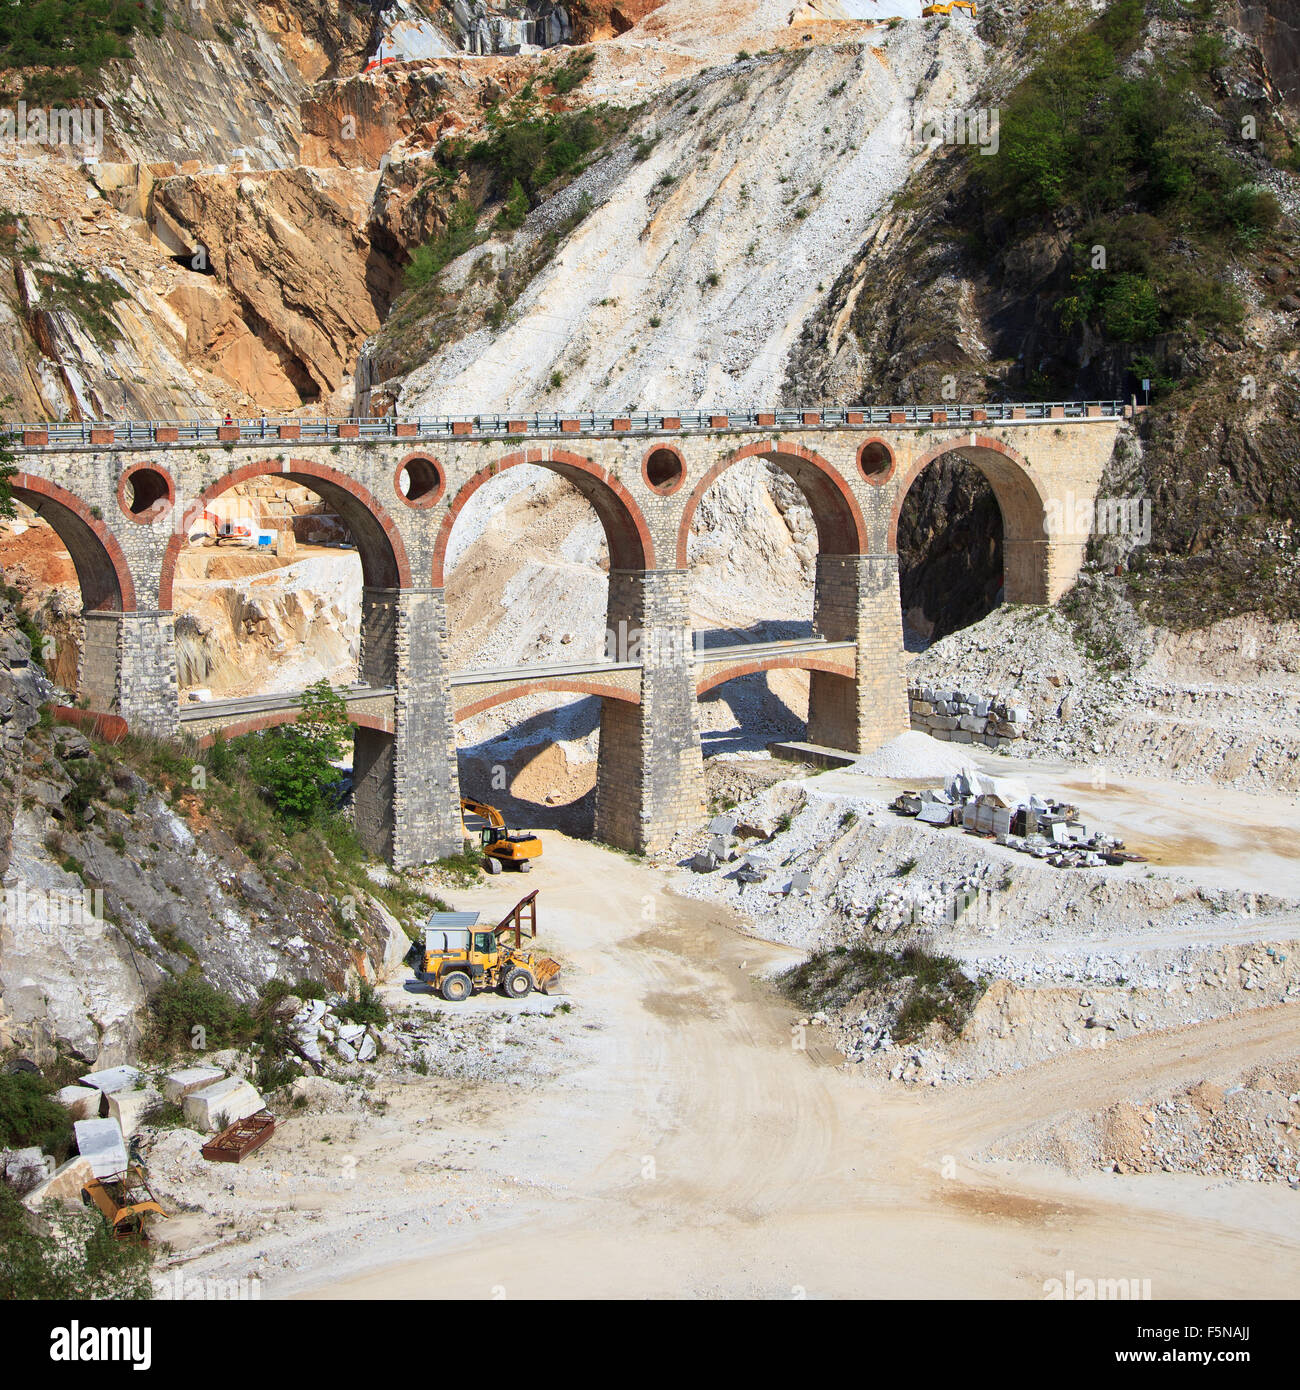 White marble quarry old bridge and excavators at work. Apuan Alps, Carrara, Tuscany, Italy, Europe - Stock Image